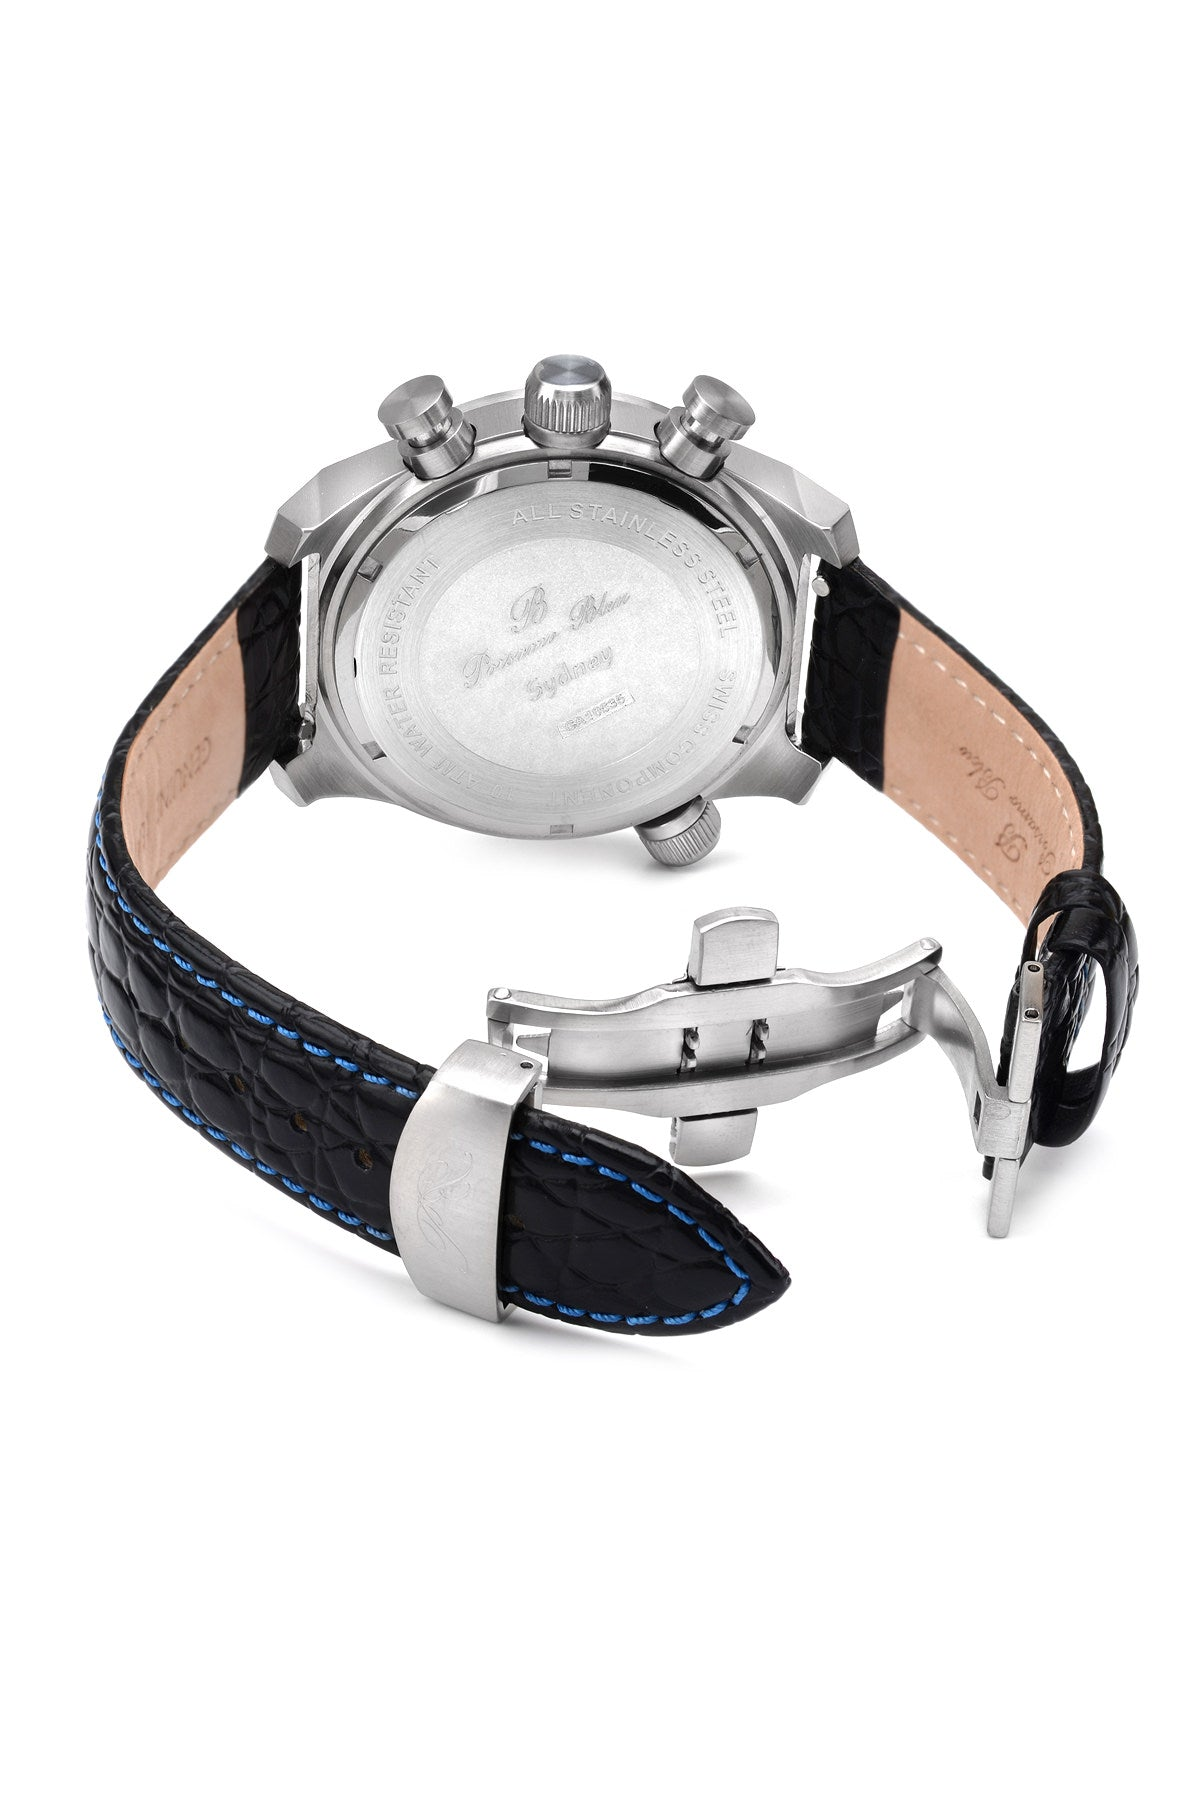 Porsamo Bleu Sydney luxury men's watch, genuine leather band, silver, black 162ASYL